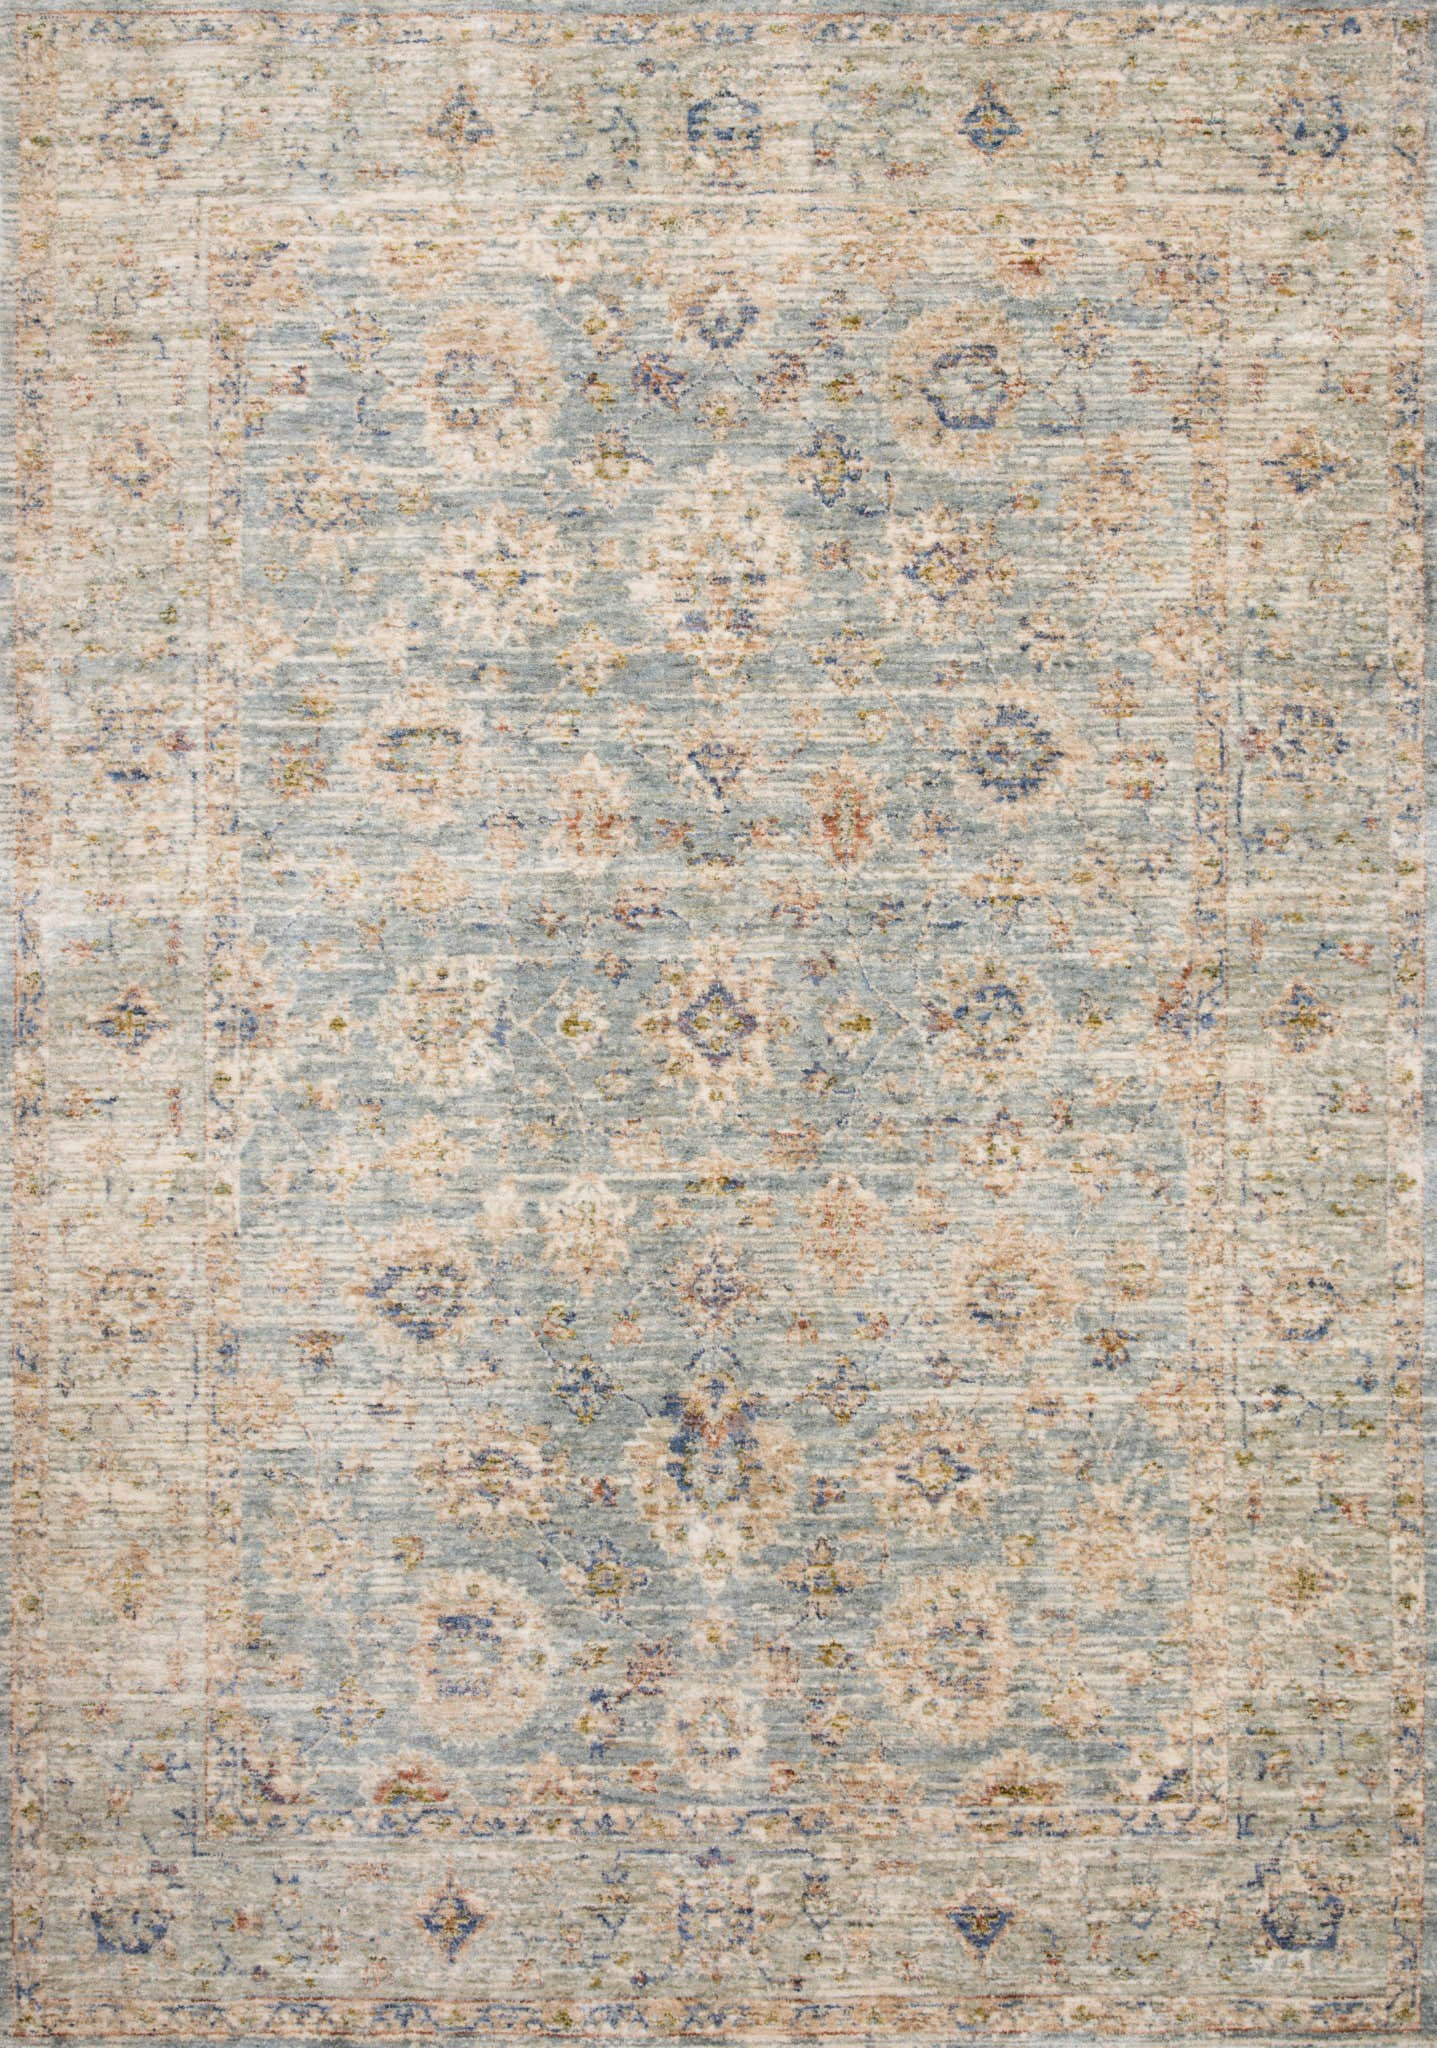 Loloi Revere REV-09 Light Blue/Multi Area Rug main image